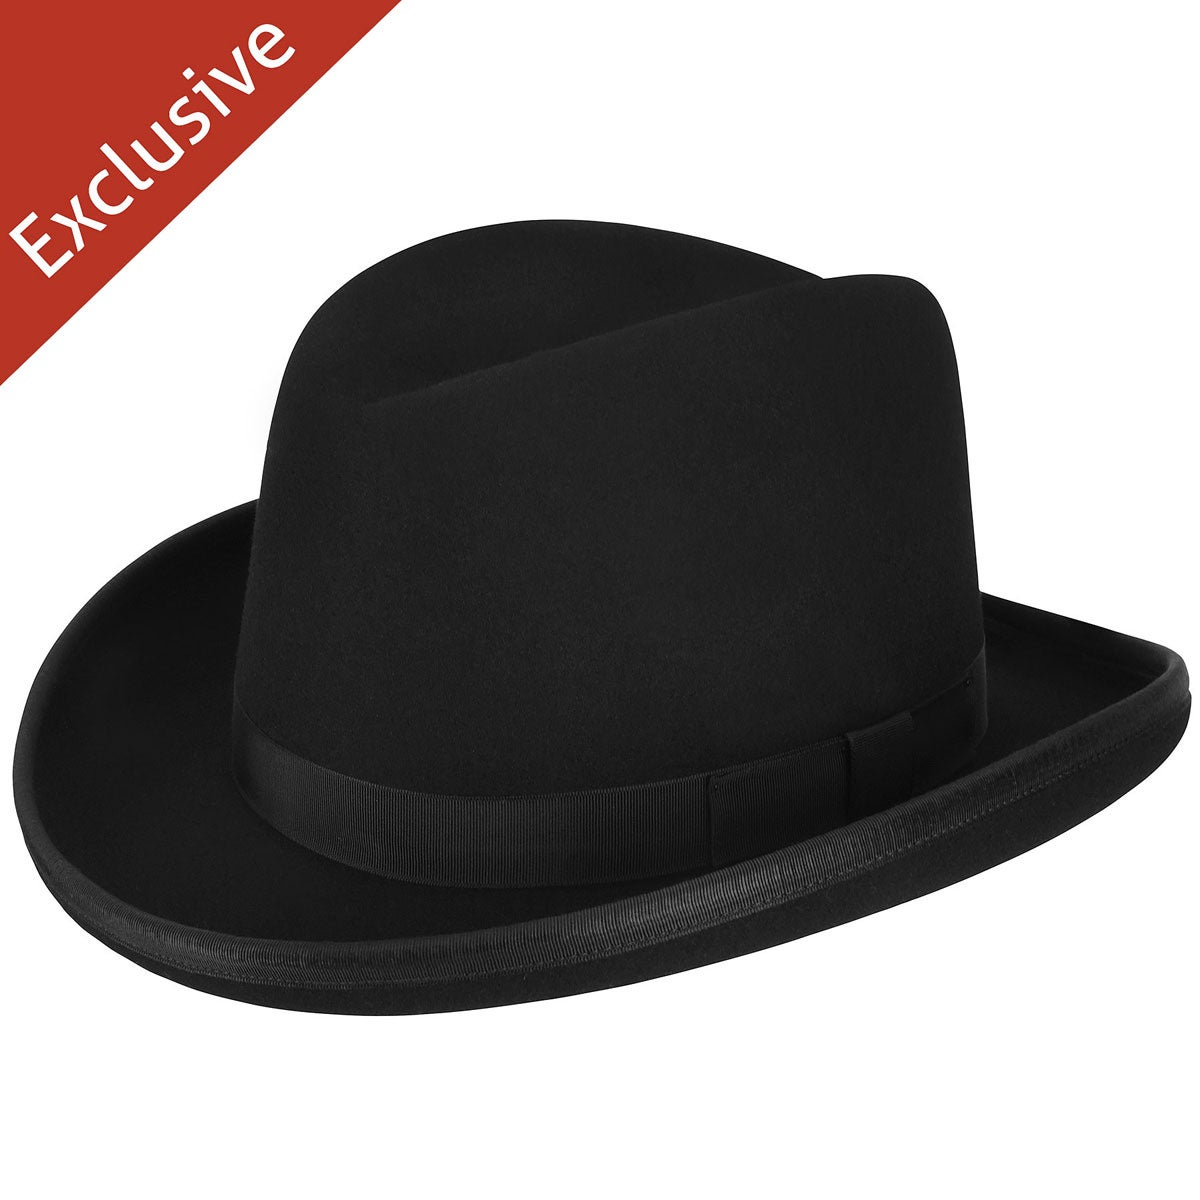 1940s Mens Hats | Fedora, Homburg, Pork Pie Hats Big Boss Homburg - Exclusive $39.99 AT vintagedancer.com